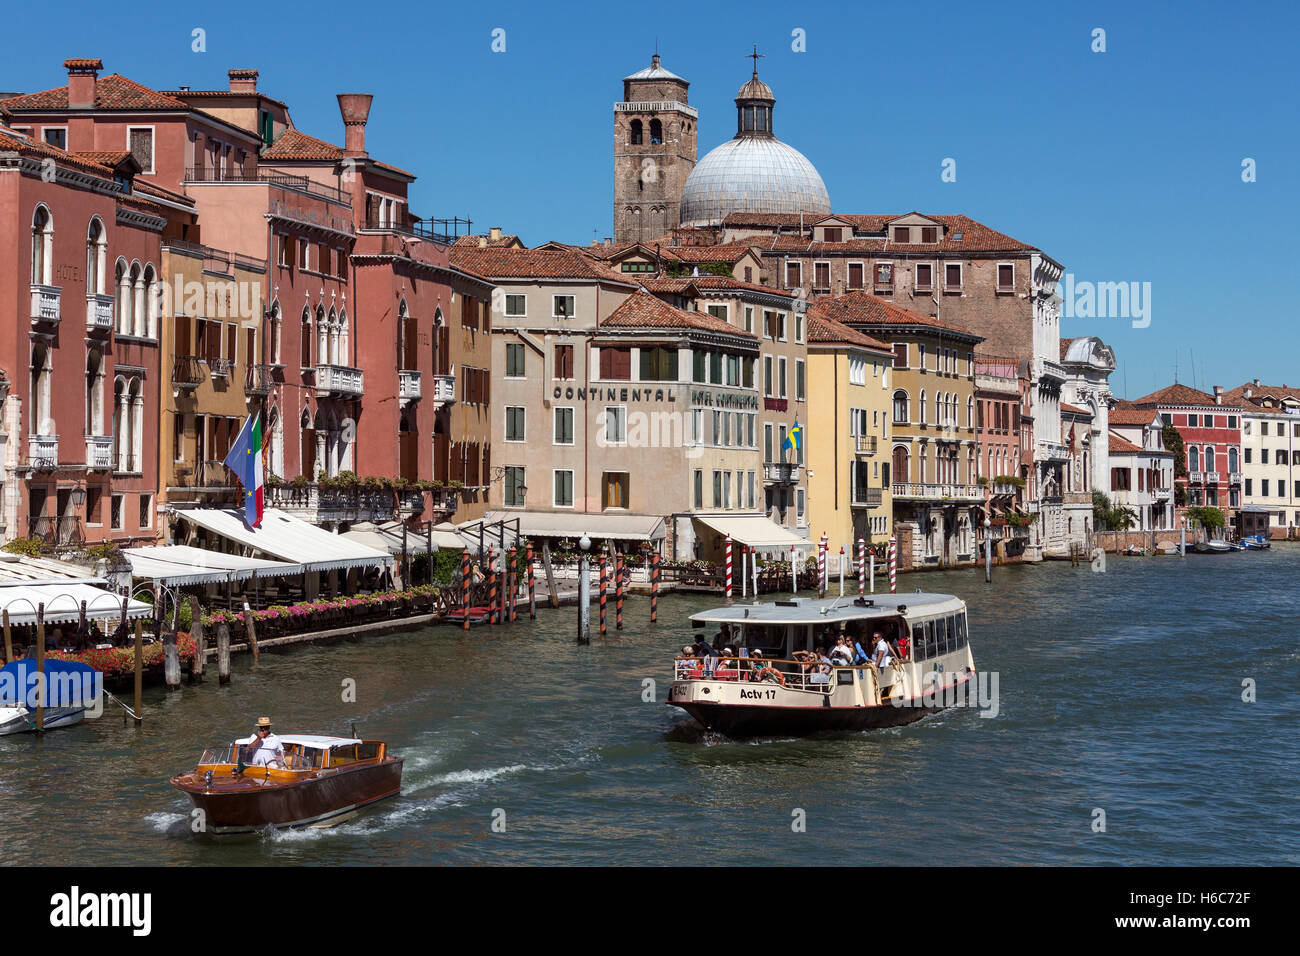 A Vaporetto (public water bus) on the Grand Canal in Venice in northern Italy. - Stock Image